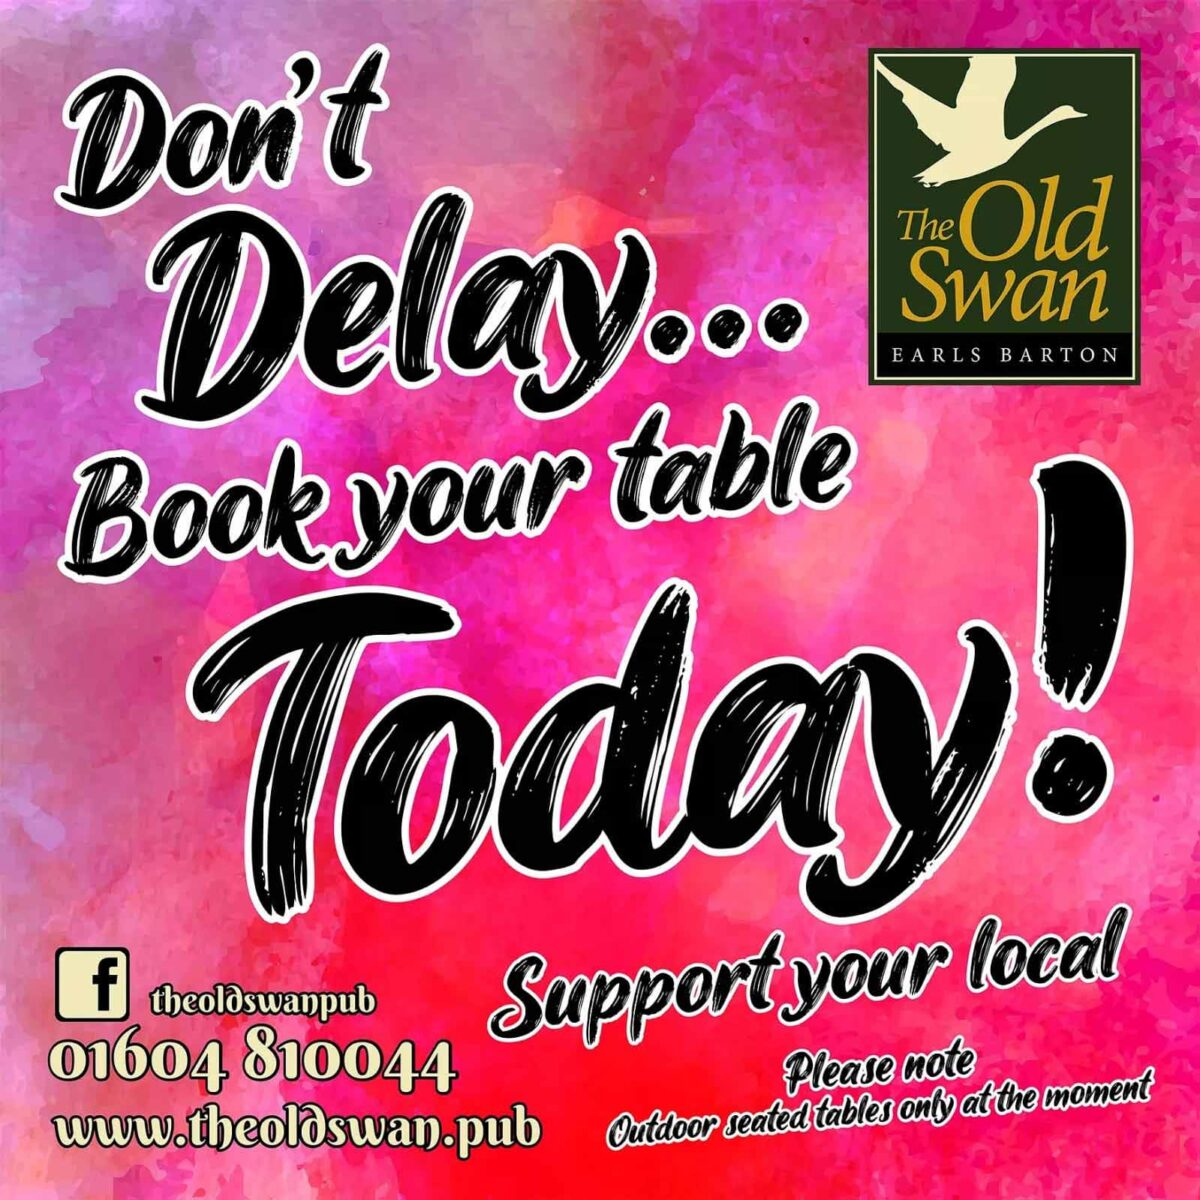 Don't delay - book today